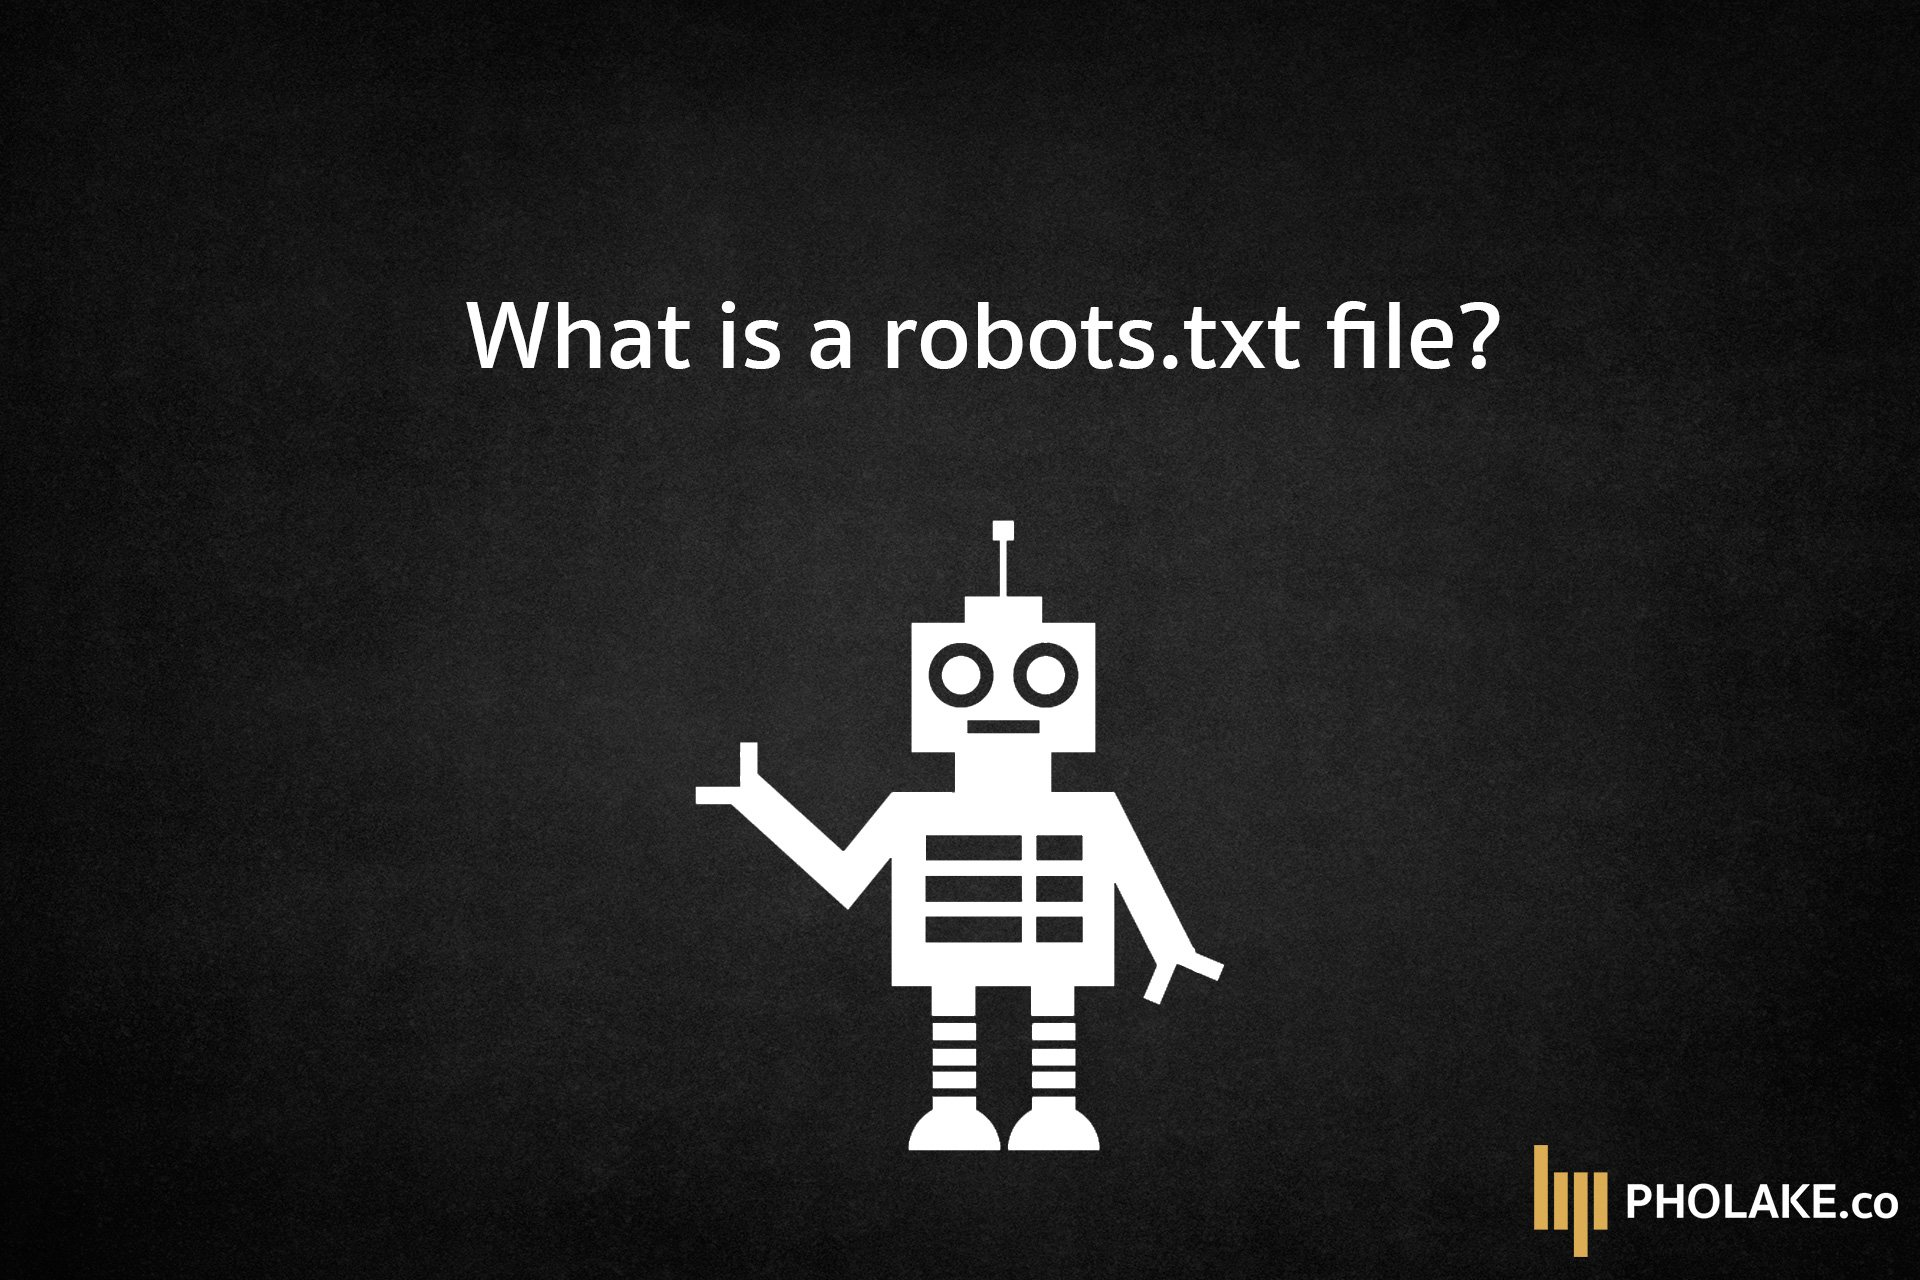 What is a robots.txt file